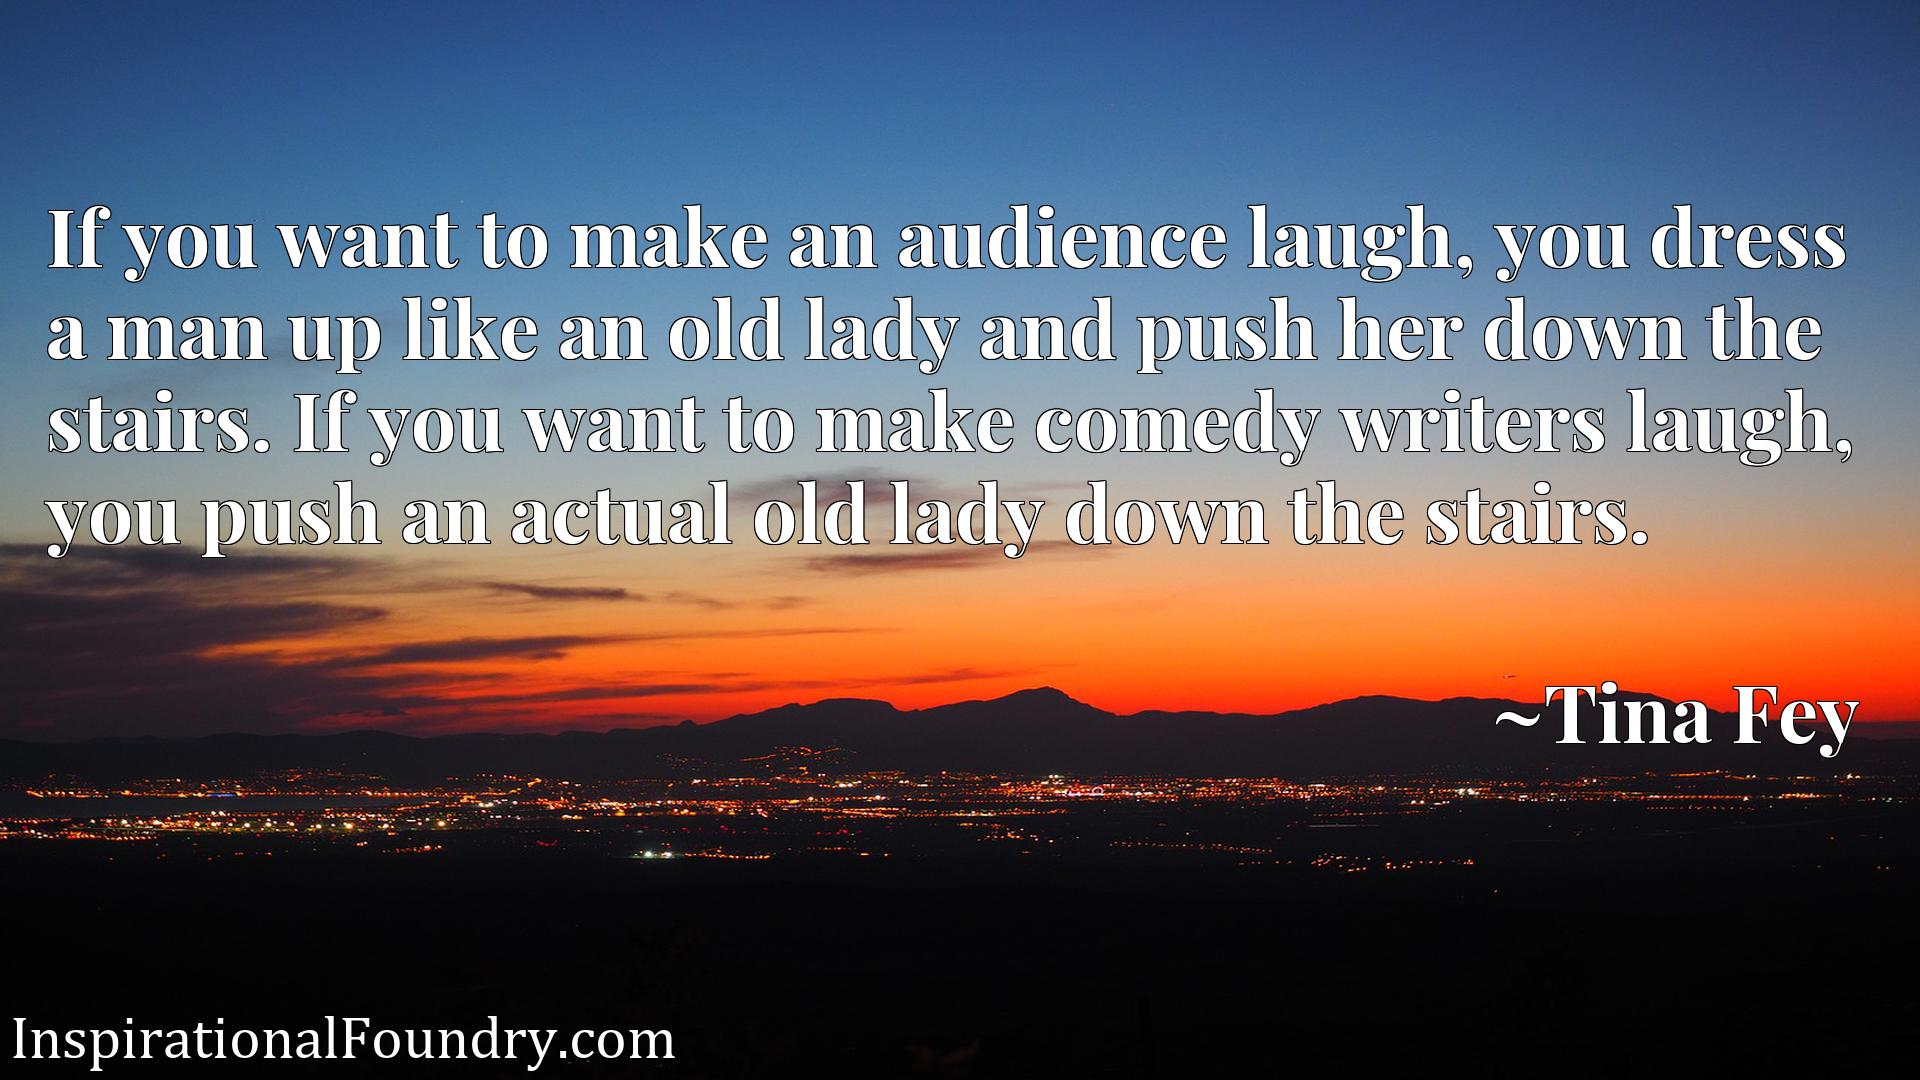 If you want to make an audience laugh, you dress a man up like an old lady and push her down the stairs. If you want to make comedy writers laugh, you push an actual old lady down the stairs.